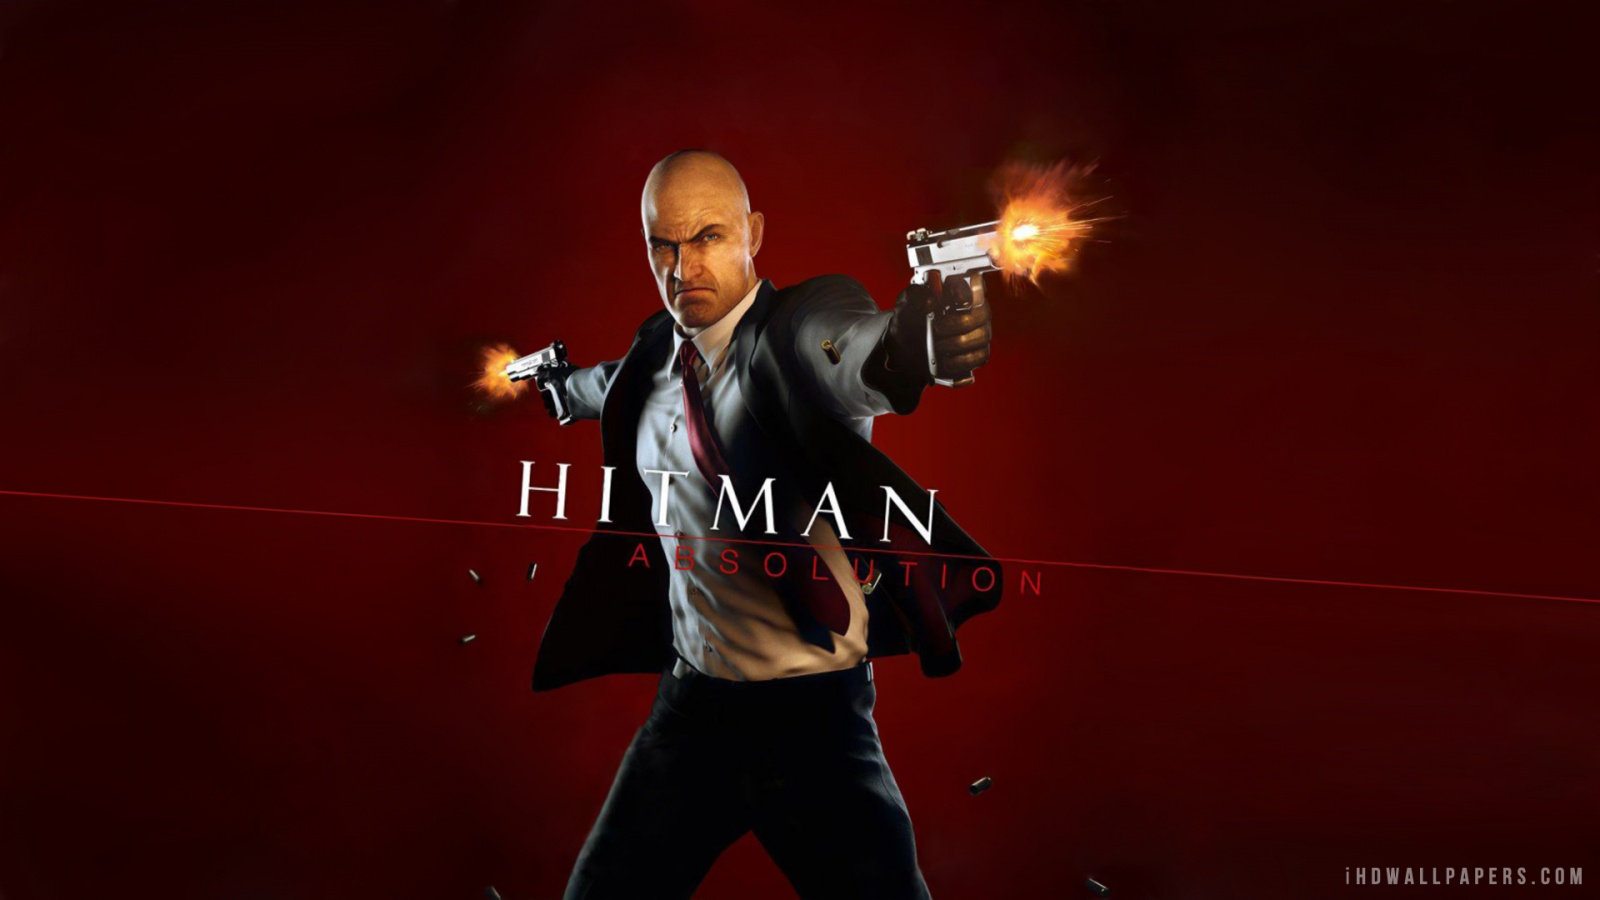 2012 Hitman Absolution Game HD Wallpaper   iHD Wallpapers 1600x900